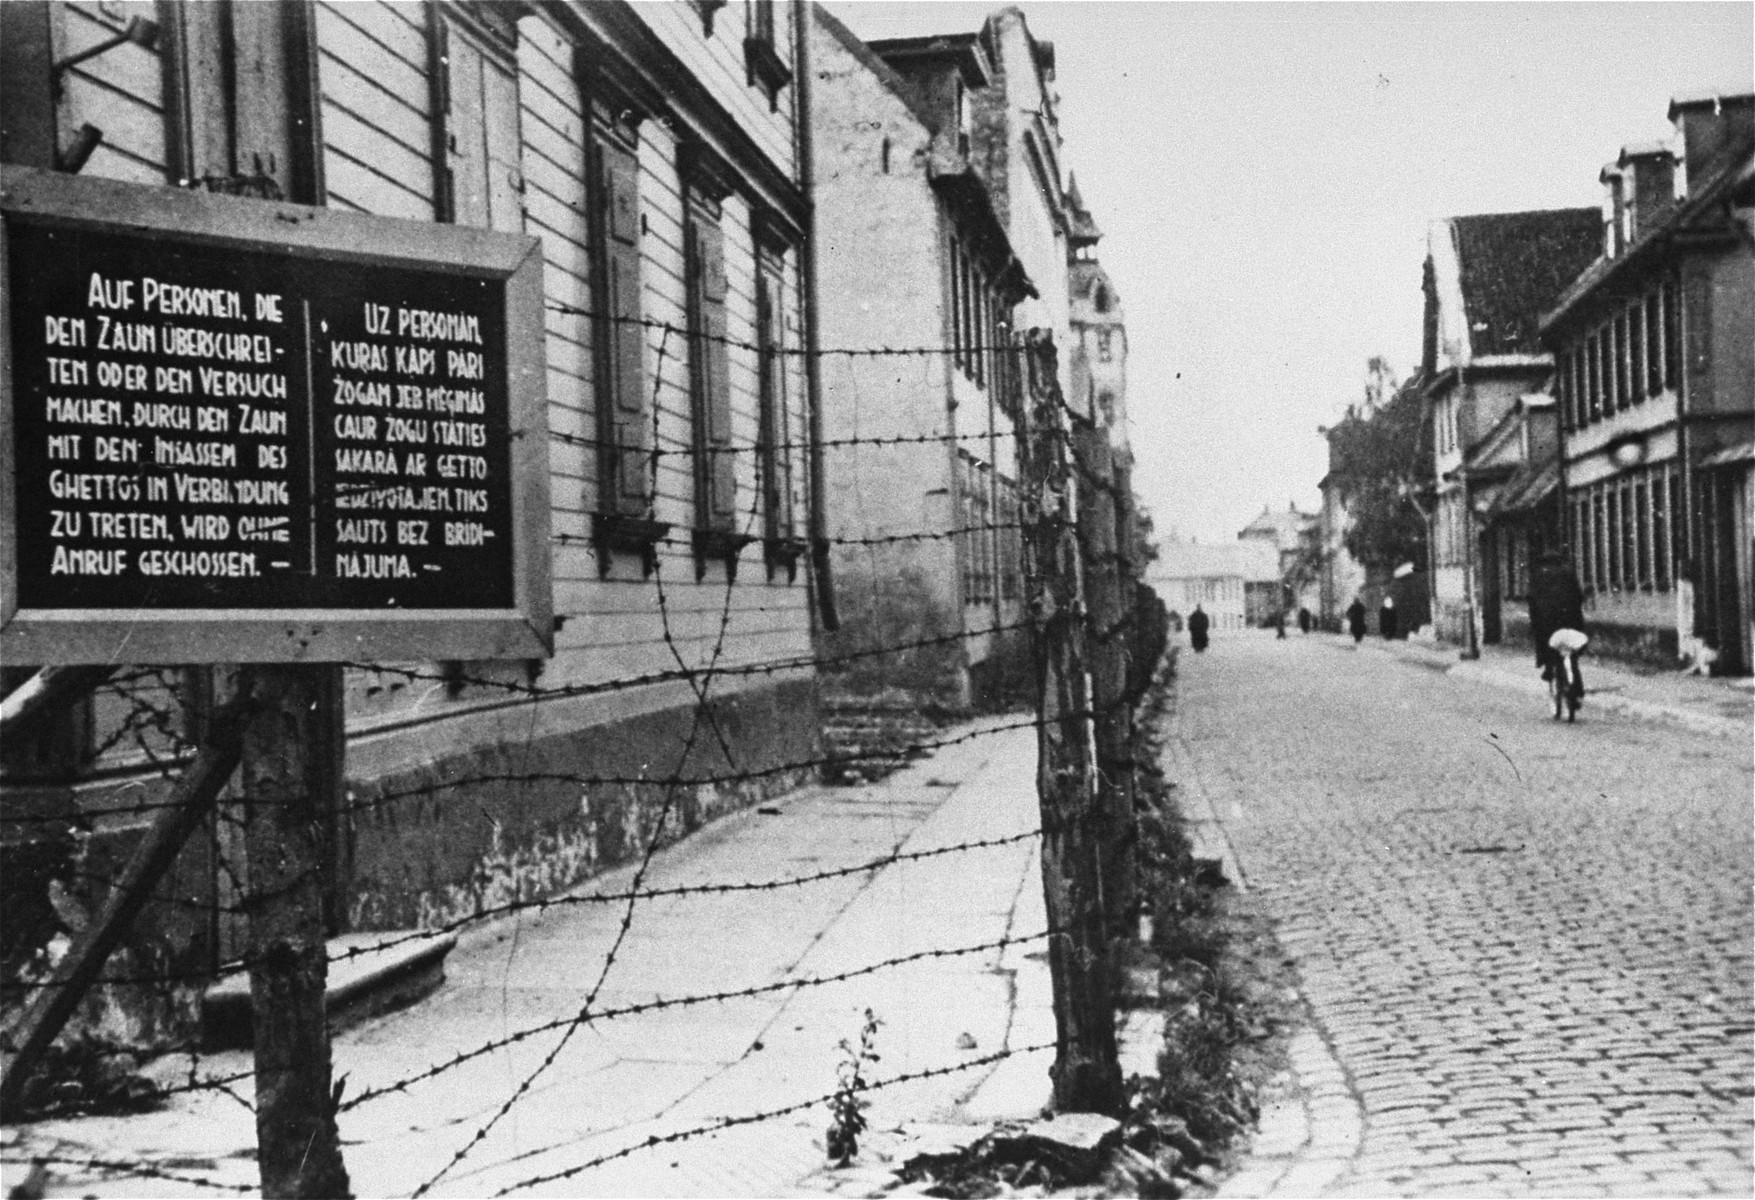 A sign in German and Latvian forbidding unauthorized entrance into the ghetto.